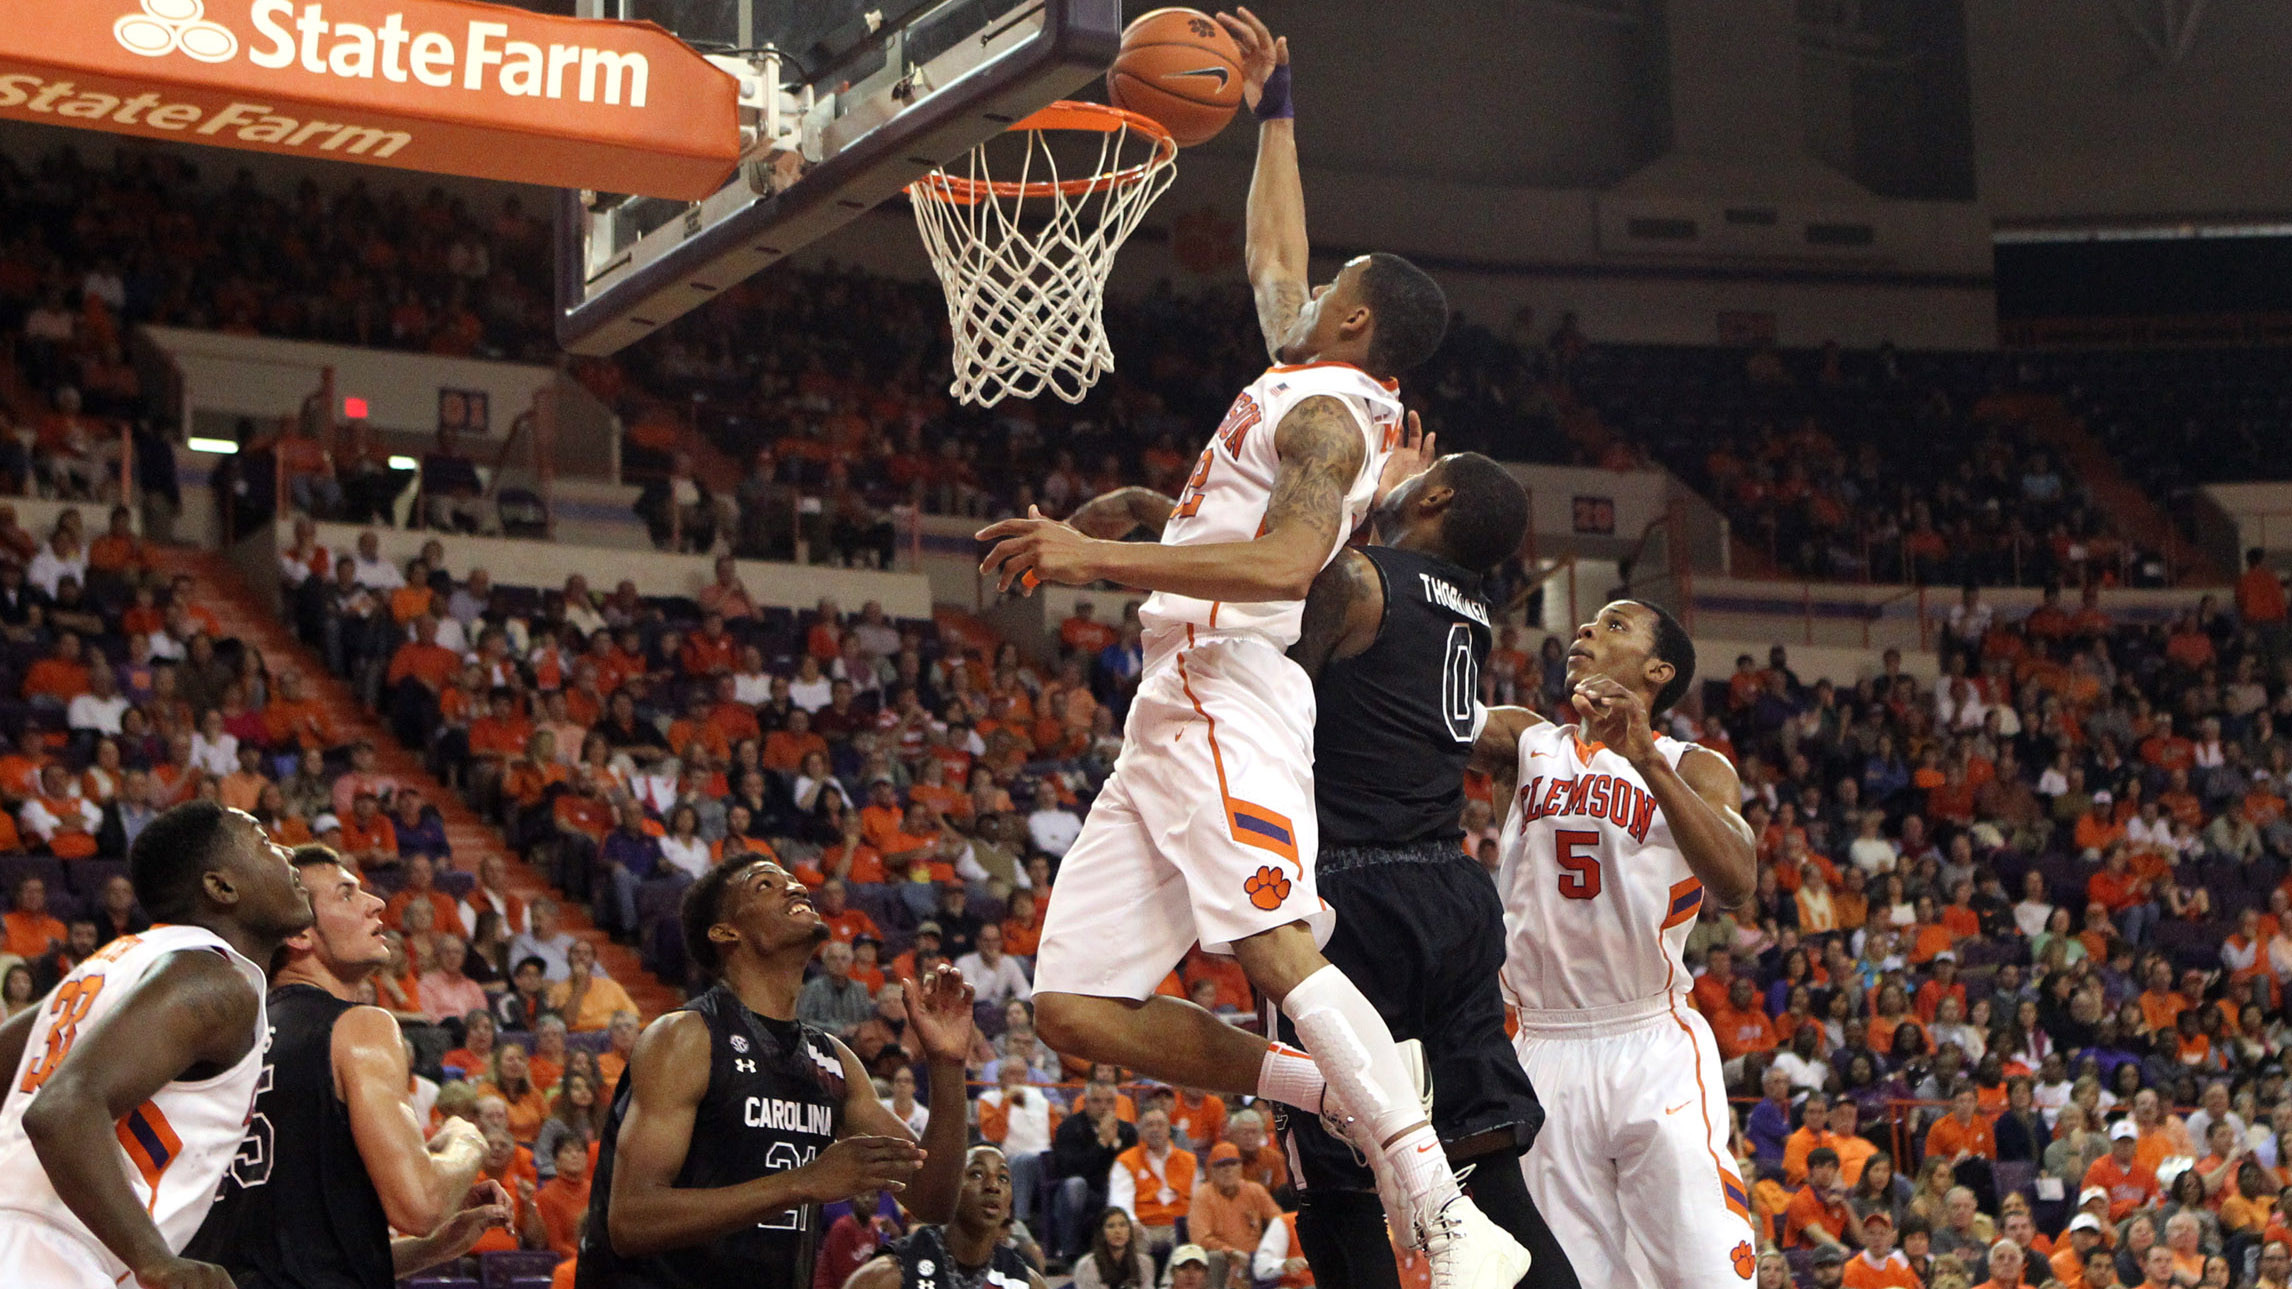 Clemson Takes Down Archrival South Carolina on Sunday, 71-57